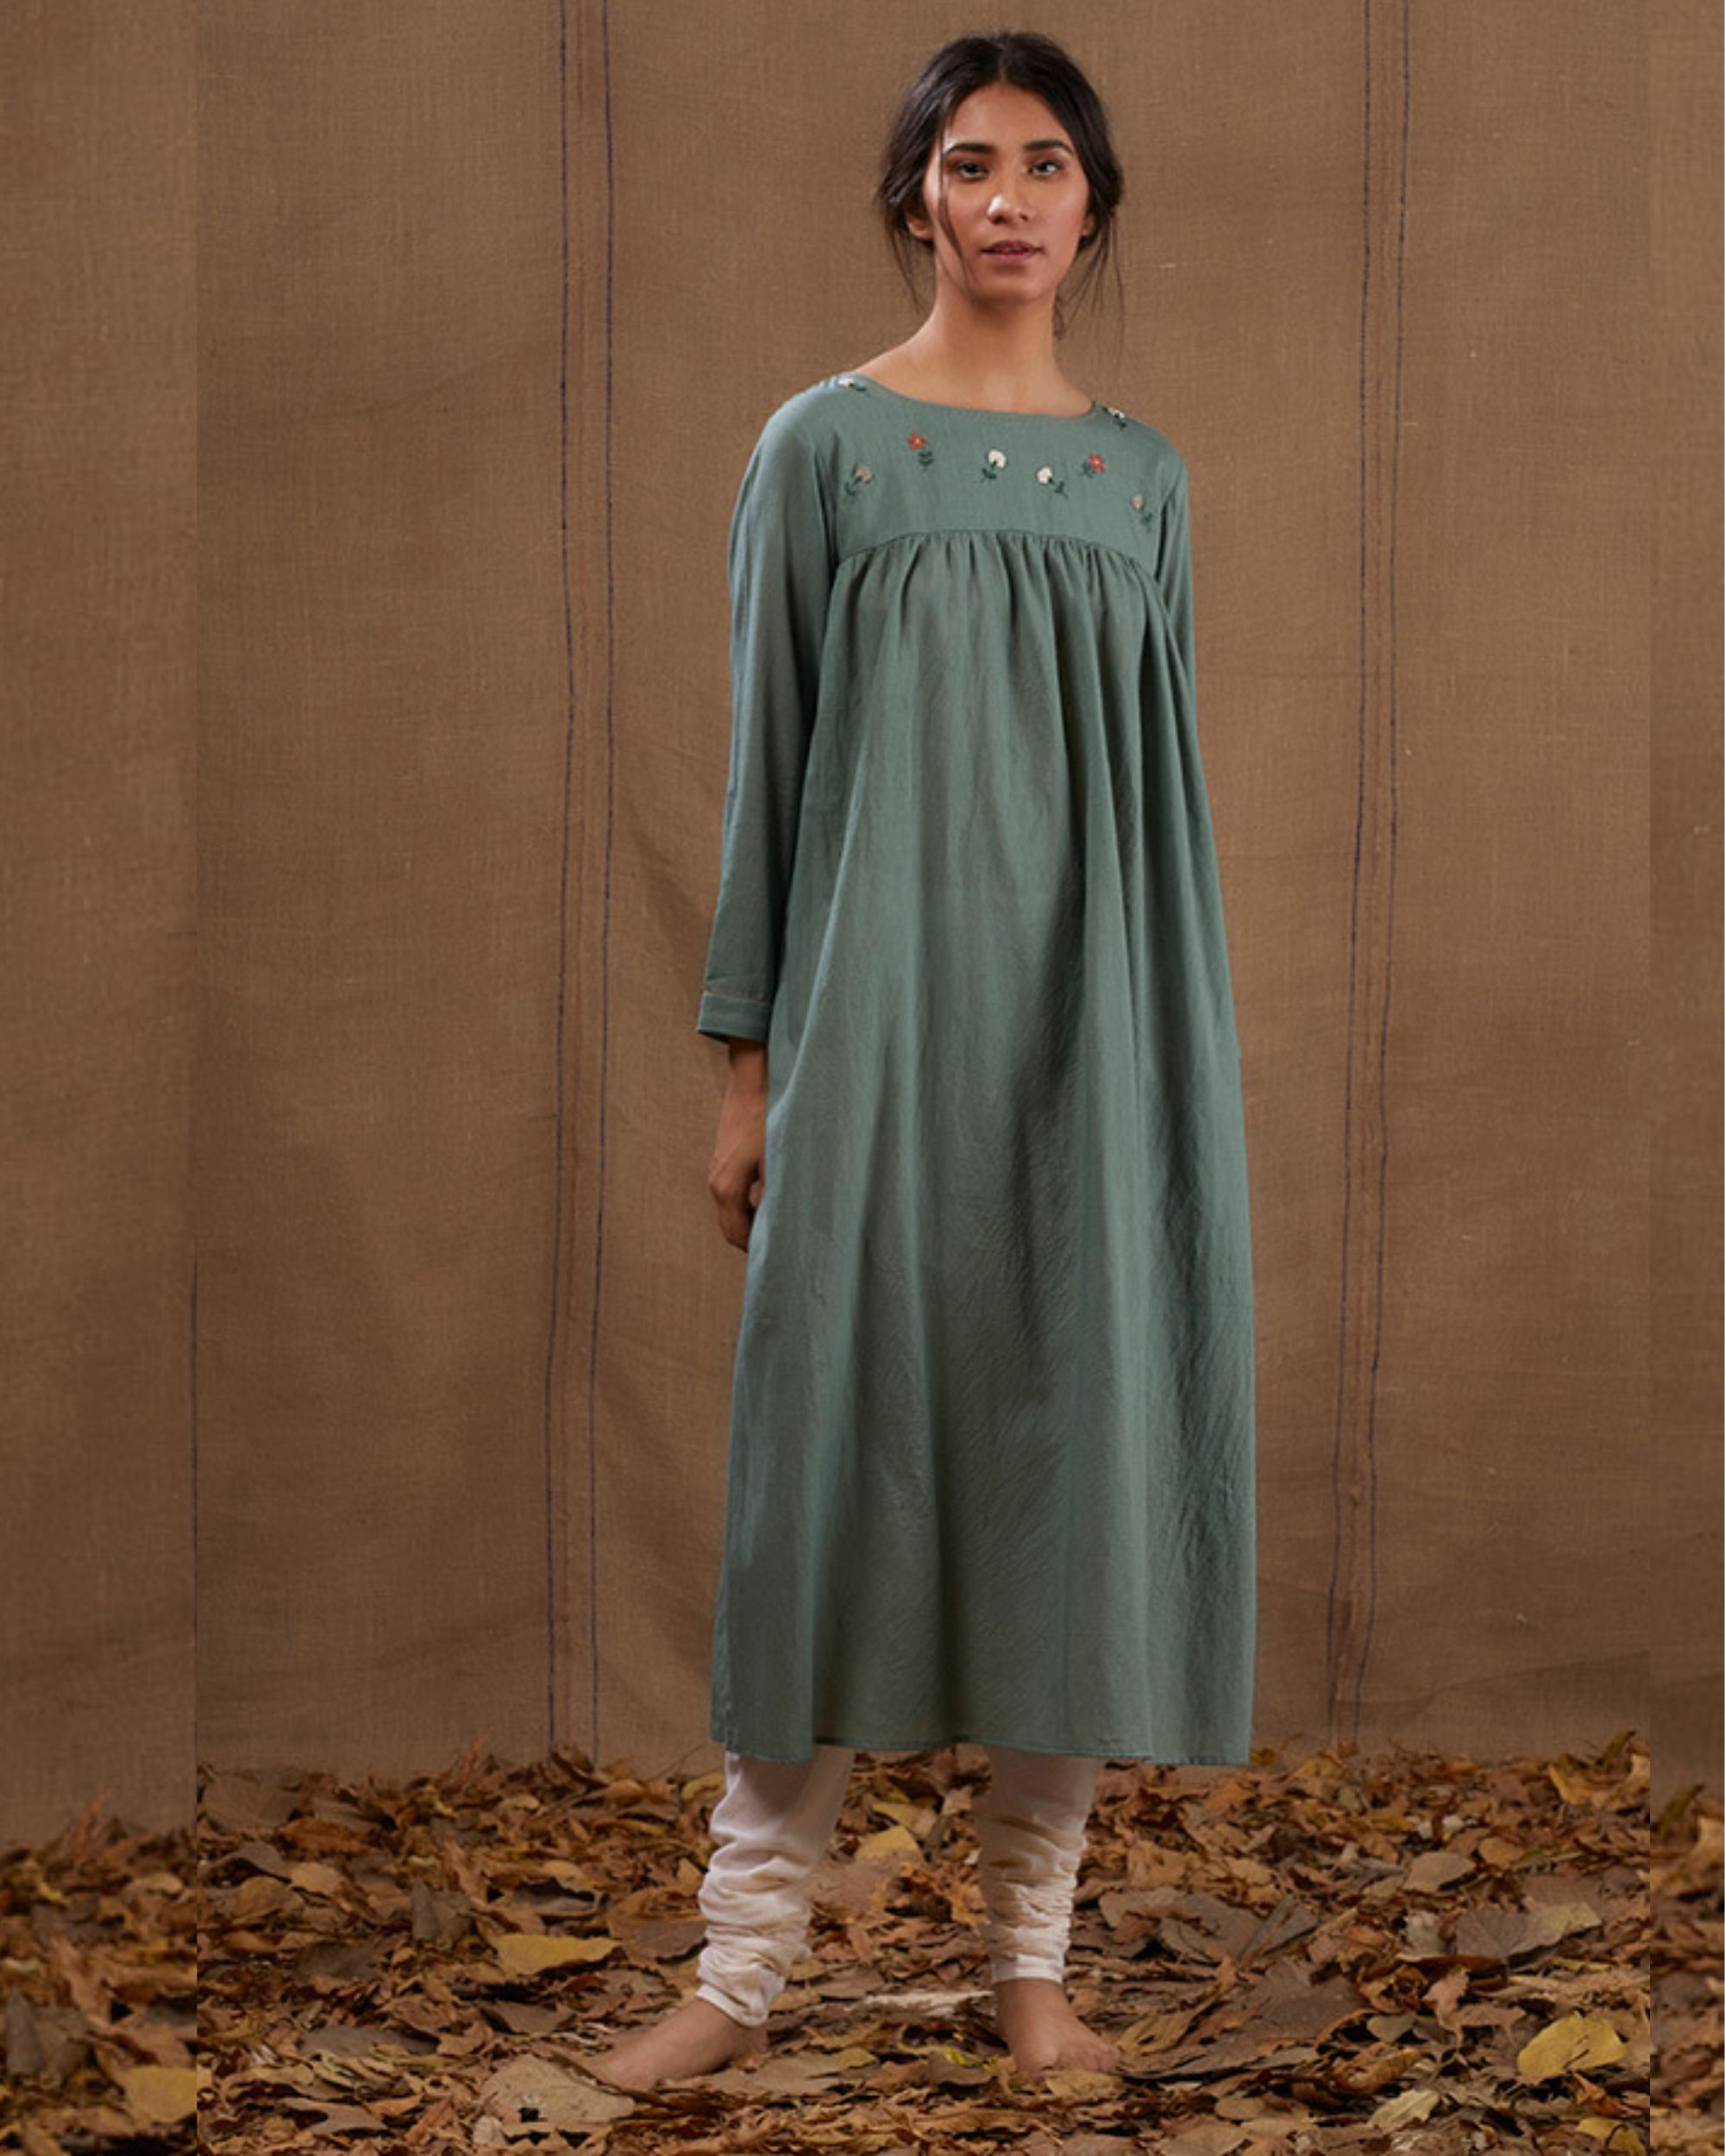 Cyan floral green embroidered dress